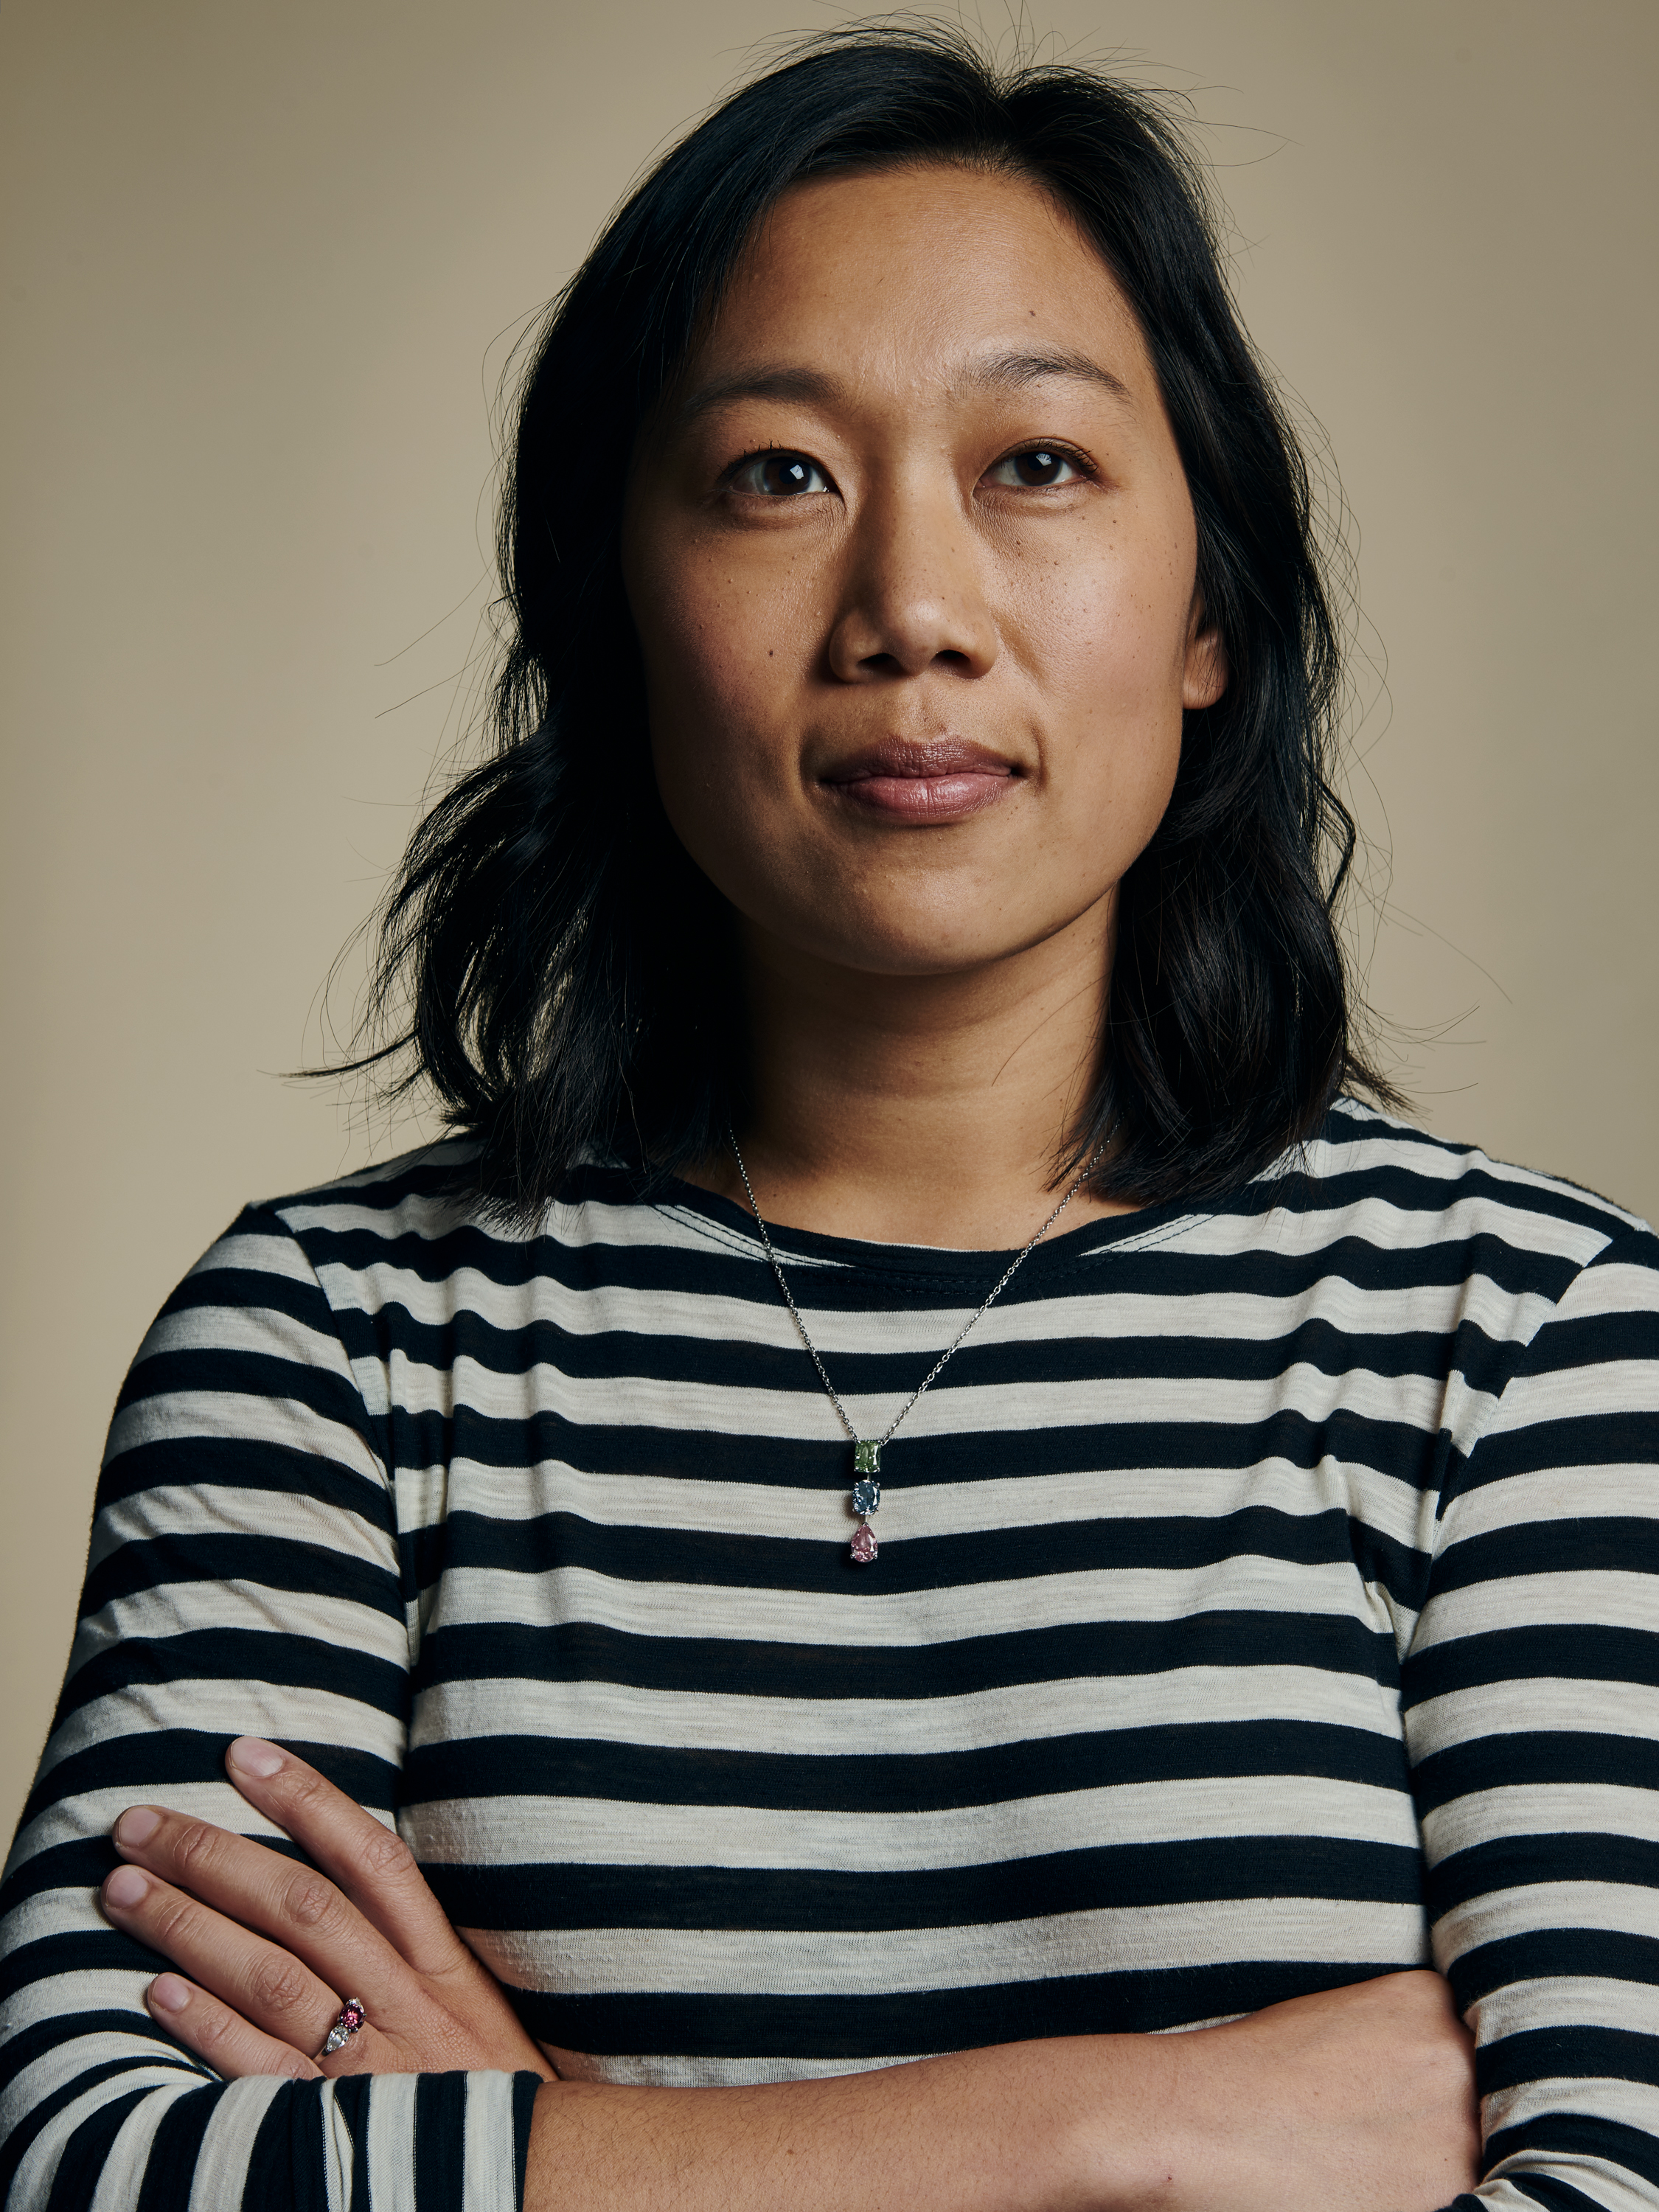 Exclusive: Priscilla Chan takes us inside her life and the Chan